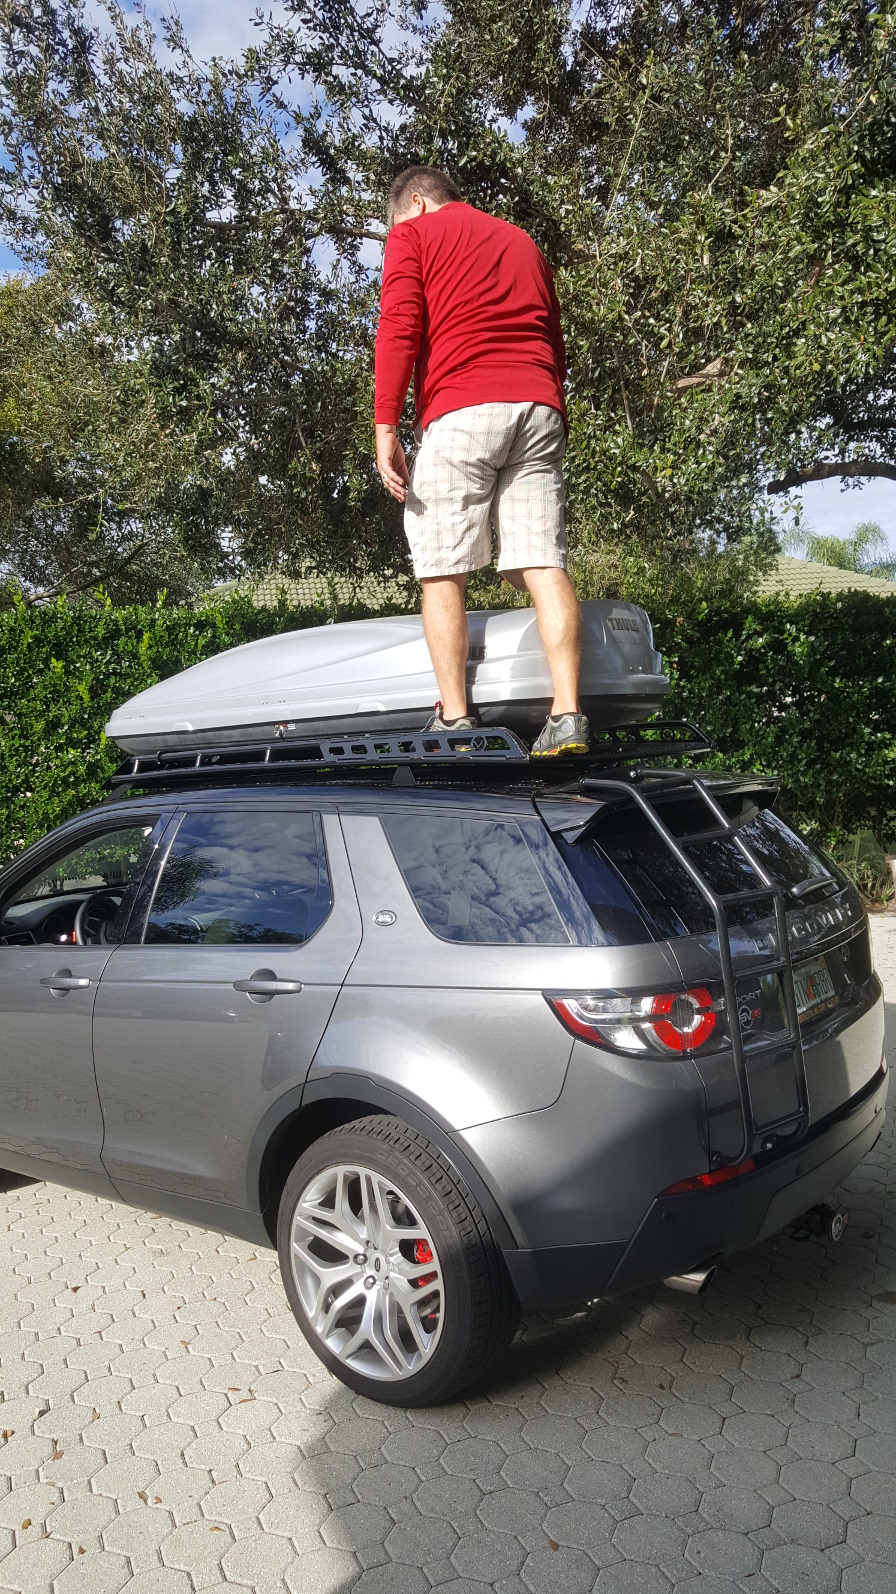 Voyager-Offroad-Land-Rover-Discovery-Sport-Rear-Ladder-Loaded-on-top.jpg